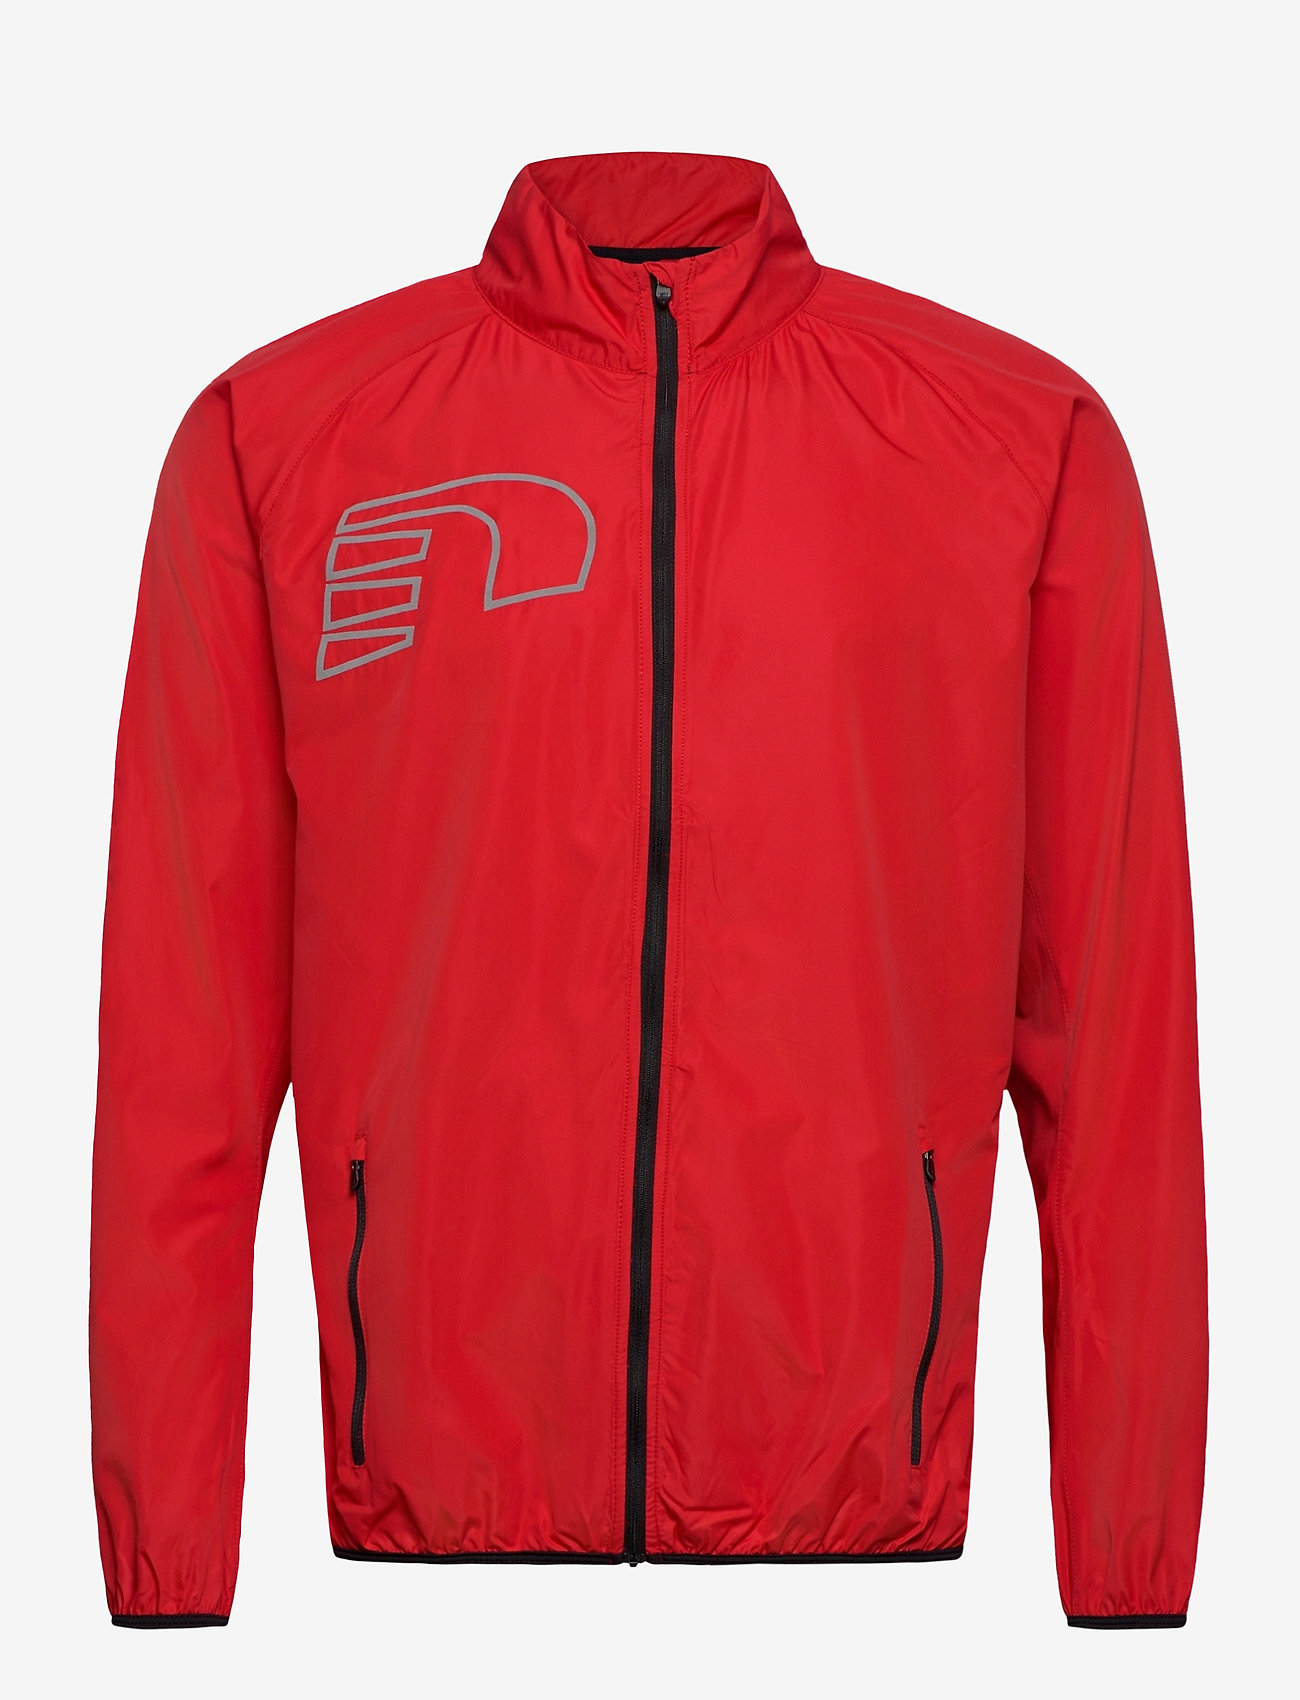 Newline - CORE JACKET - sportsjakker - red - 0